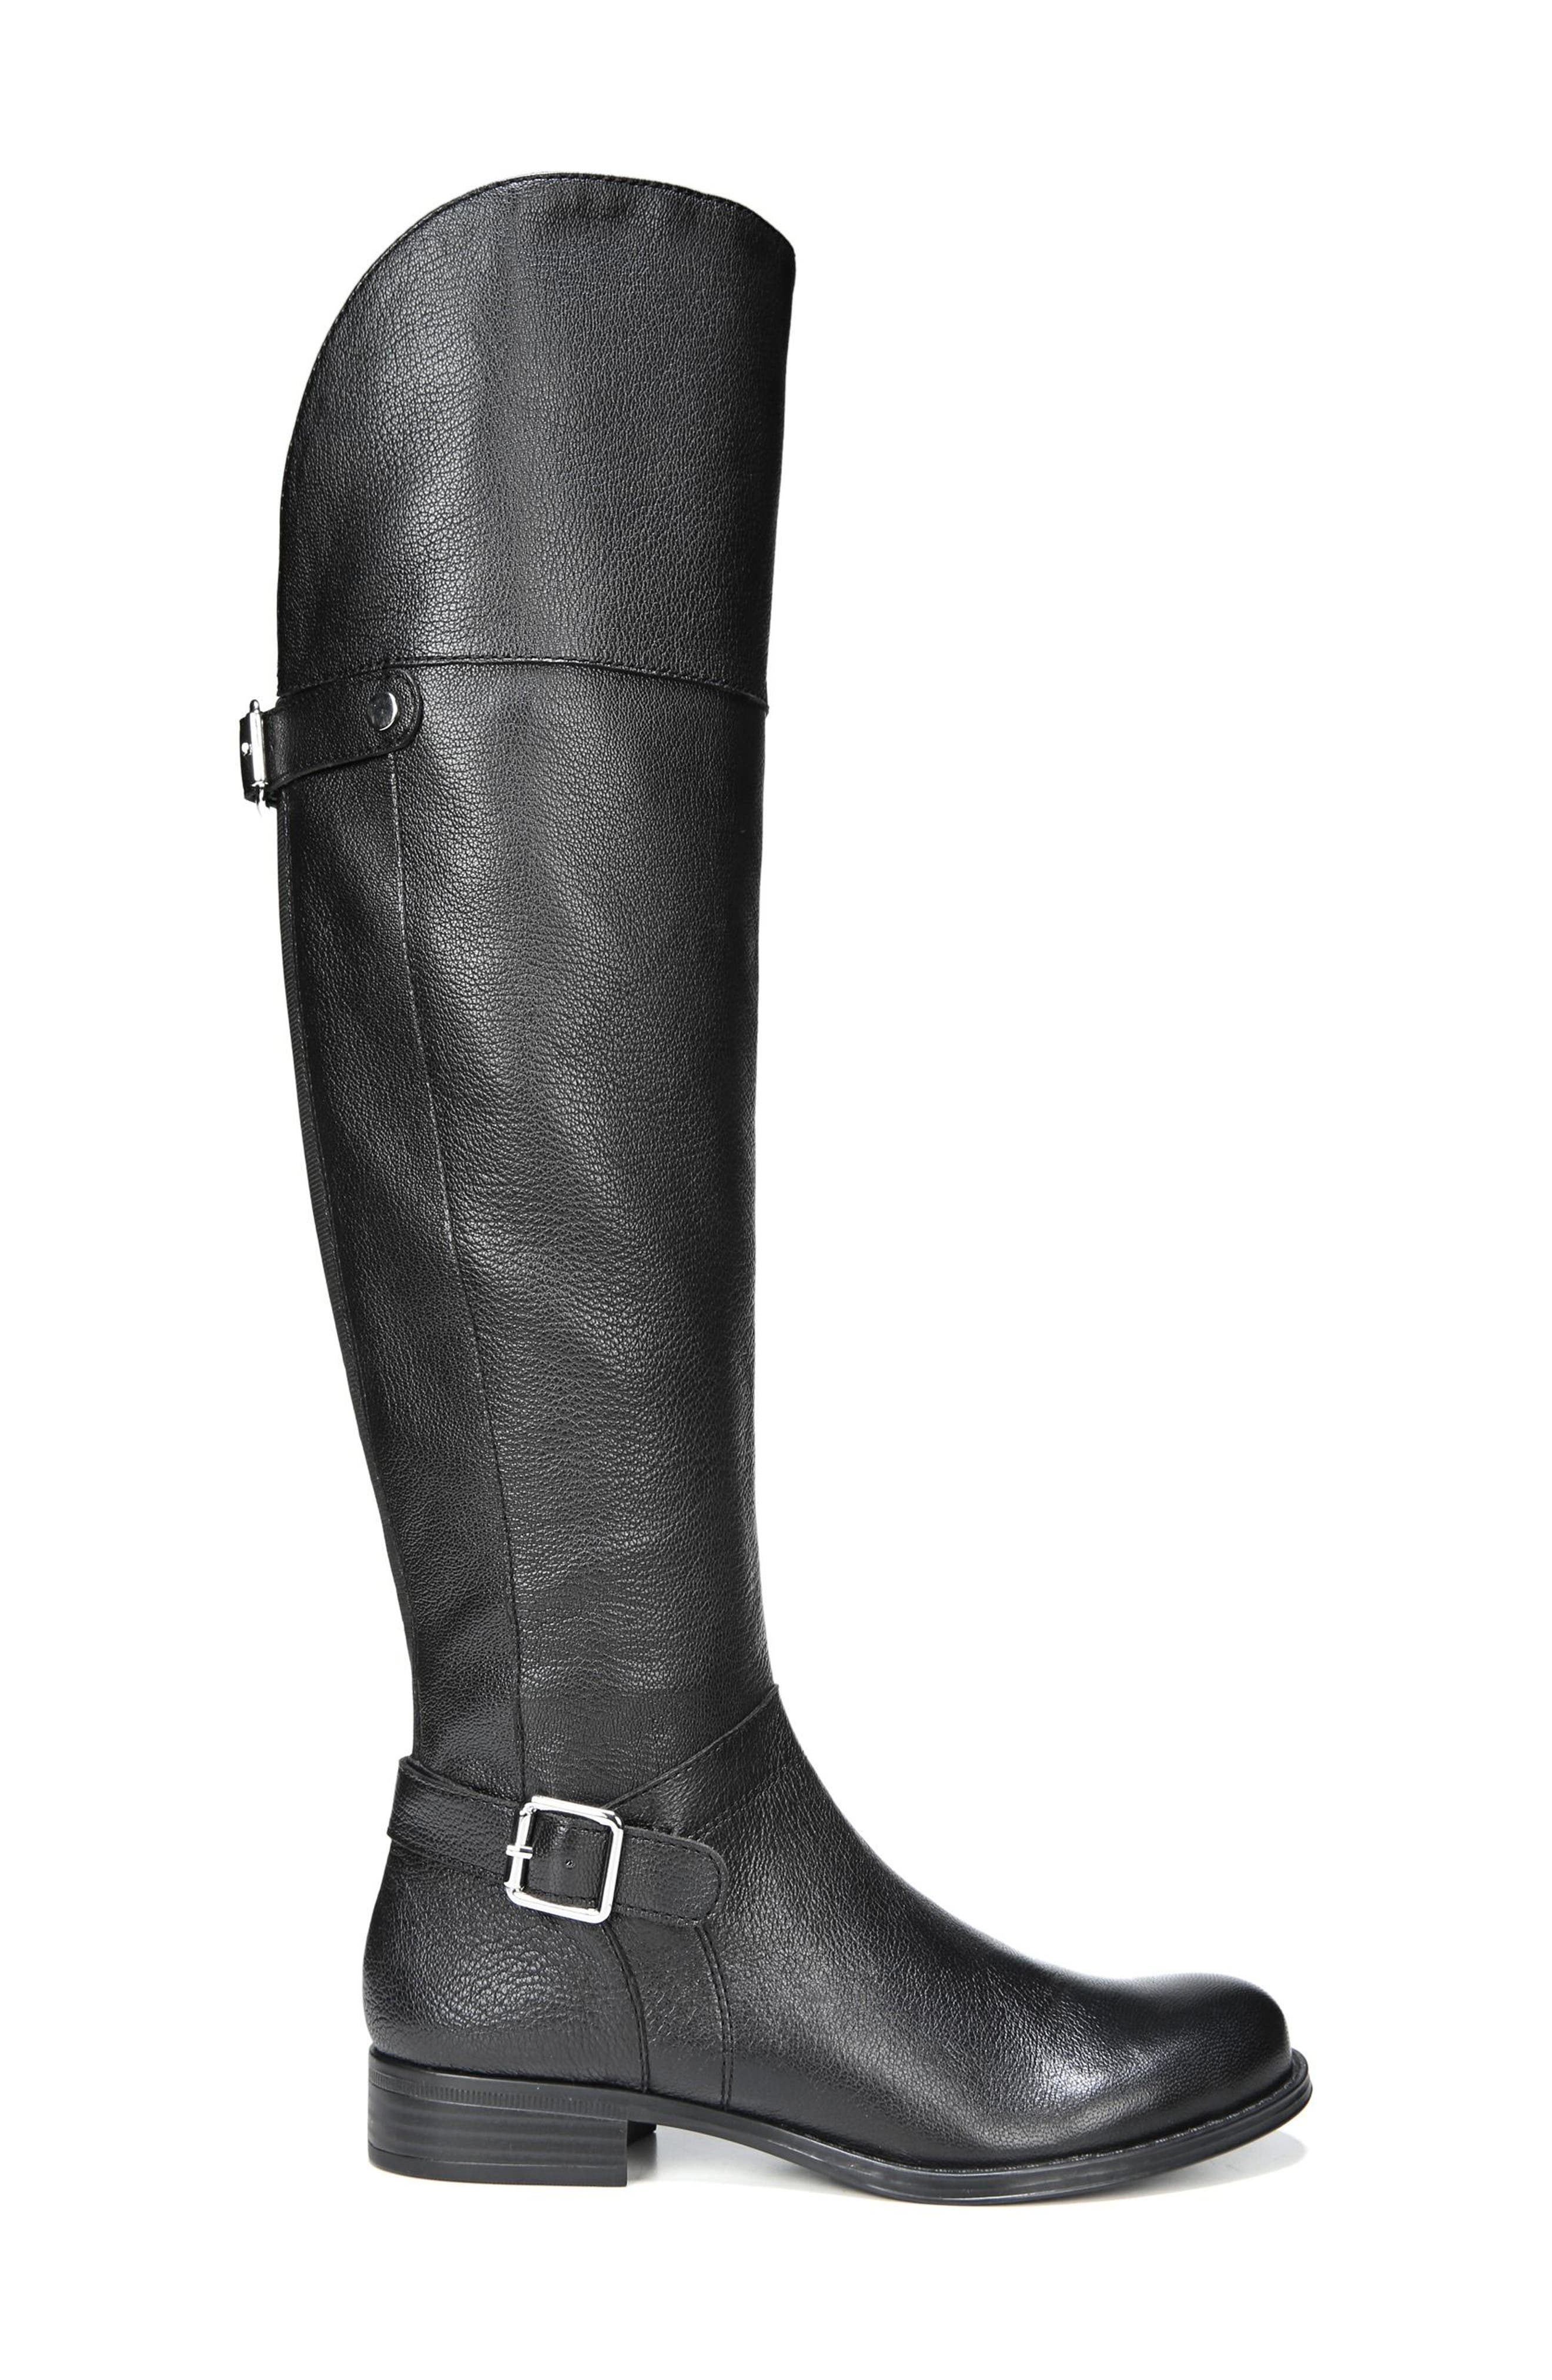 January Over the Knee High Boot,                             Alternate thumbnail 3, color,                             001